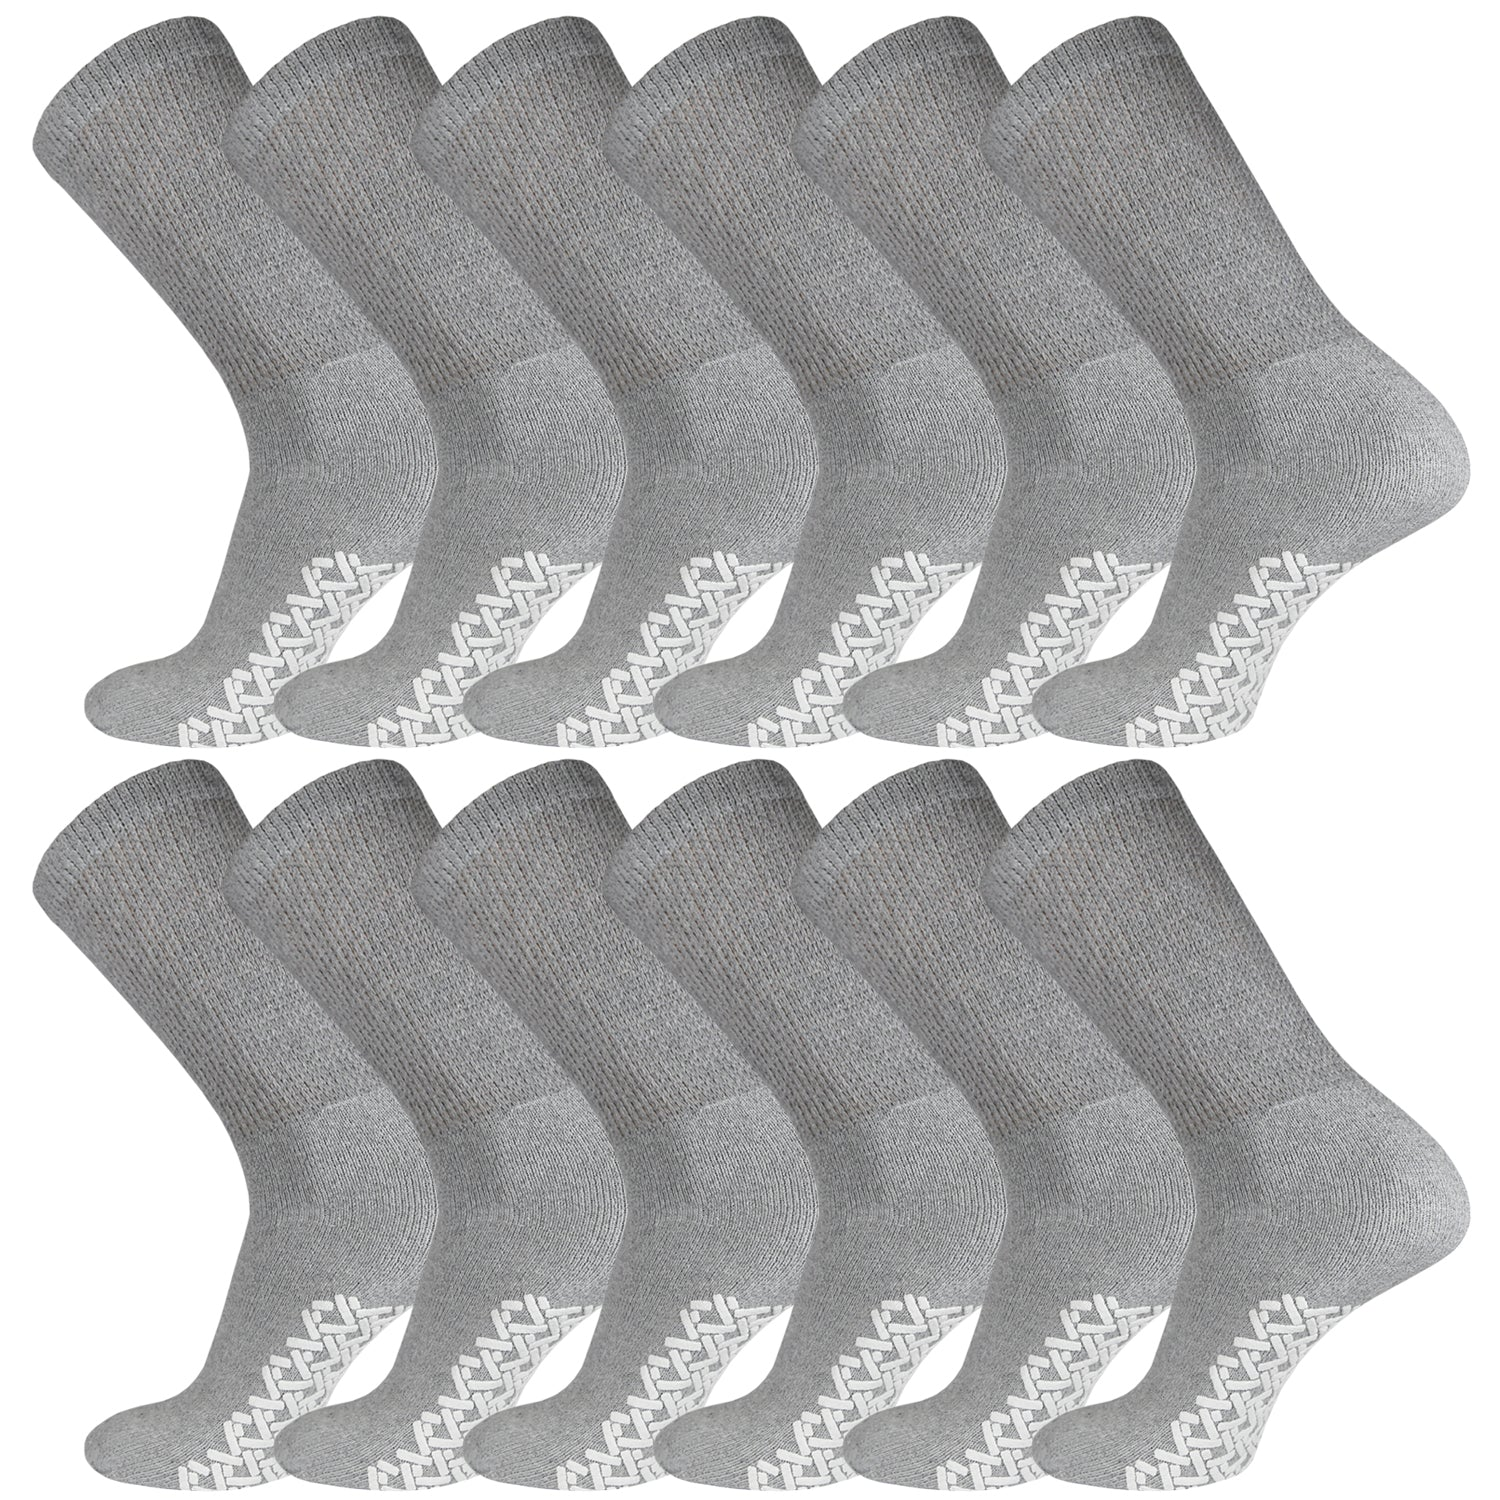 Non-Skid Crew Socks Gray Diabetic Socks With White Rubber Grips On The Bottom 12 Pairs